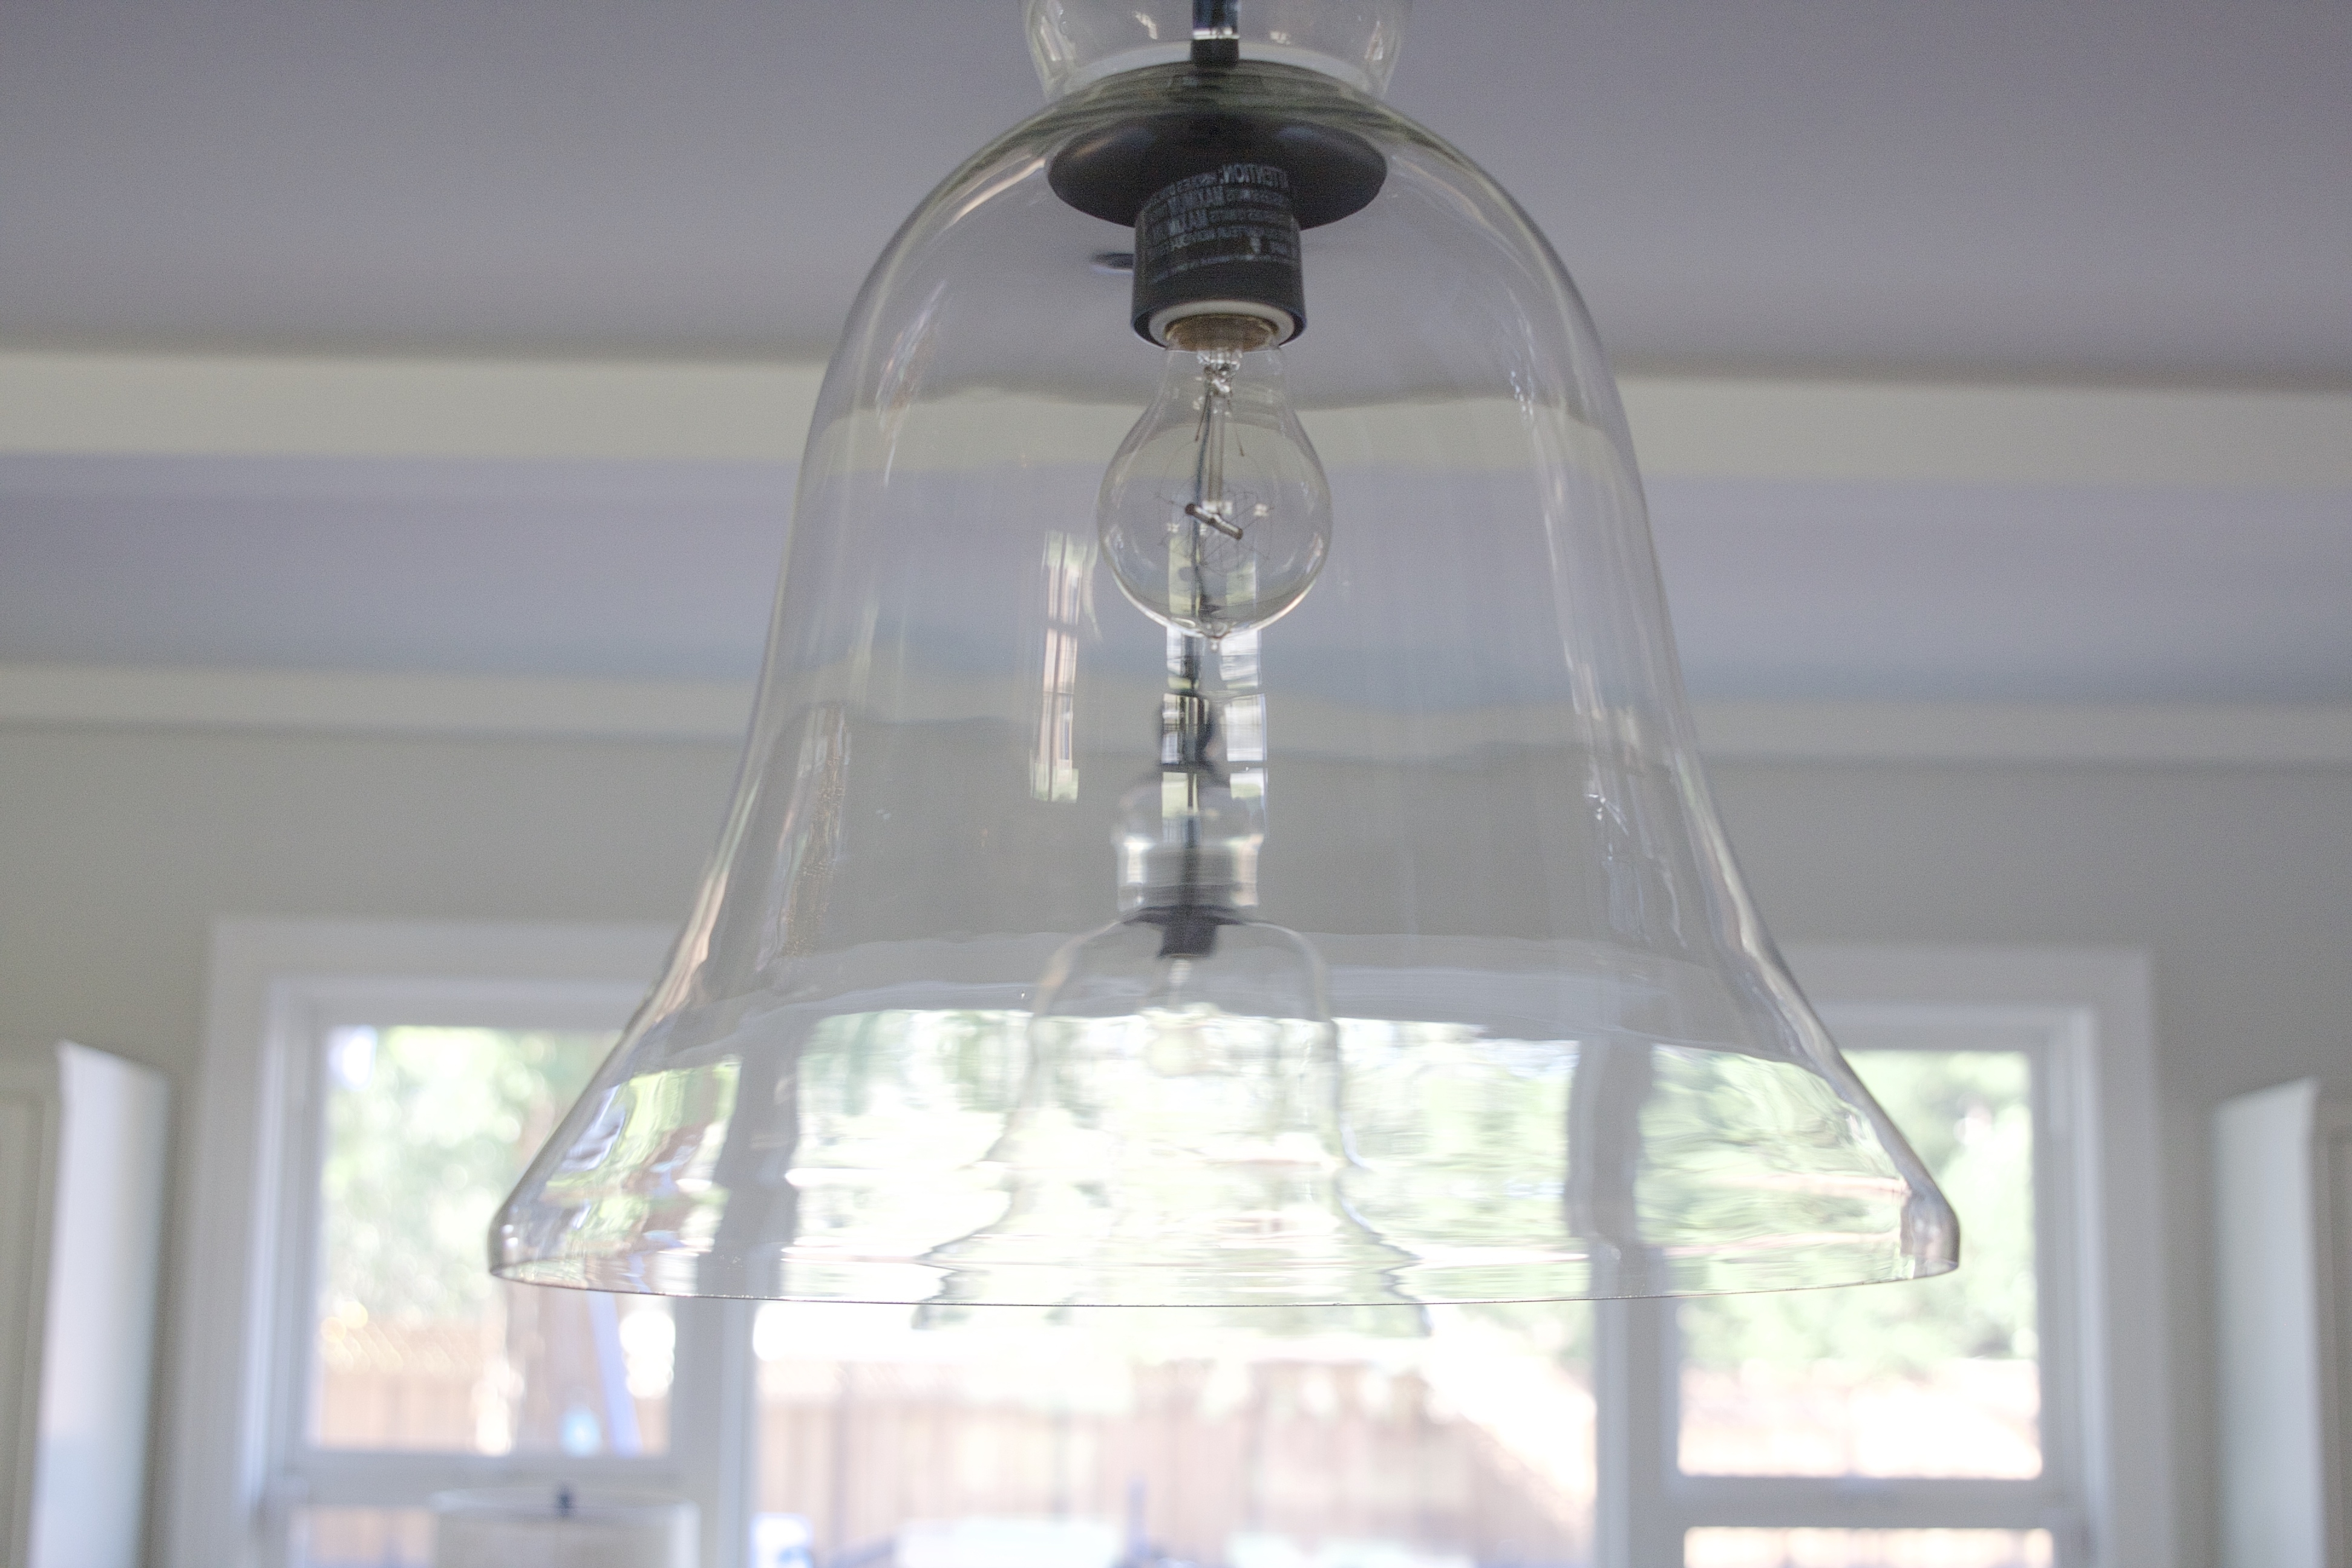 2018 How To Clean Pottery Barn Rustic Pendant Lights – Simply Organized For Clear Glass Chandeliers (View 18 of 20)